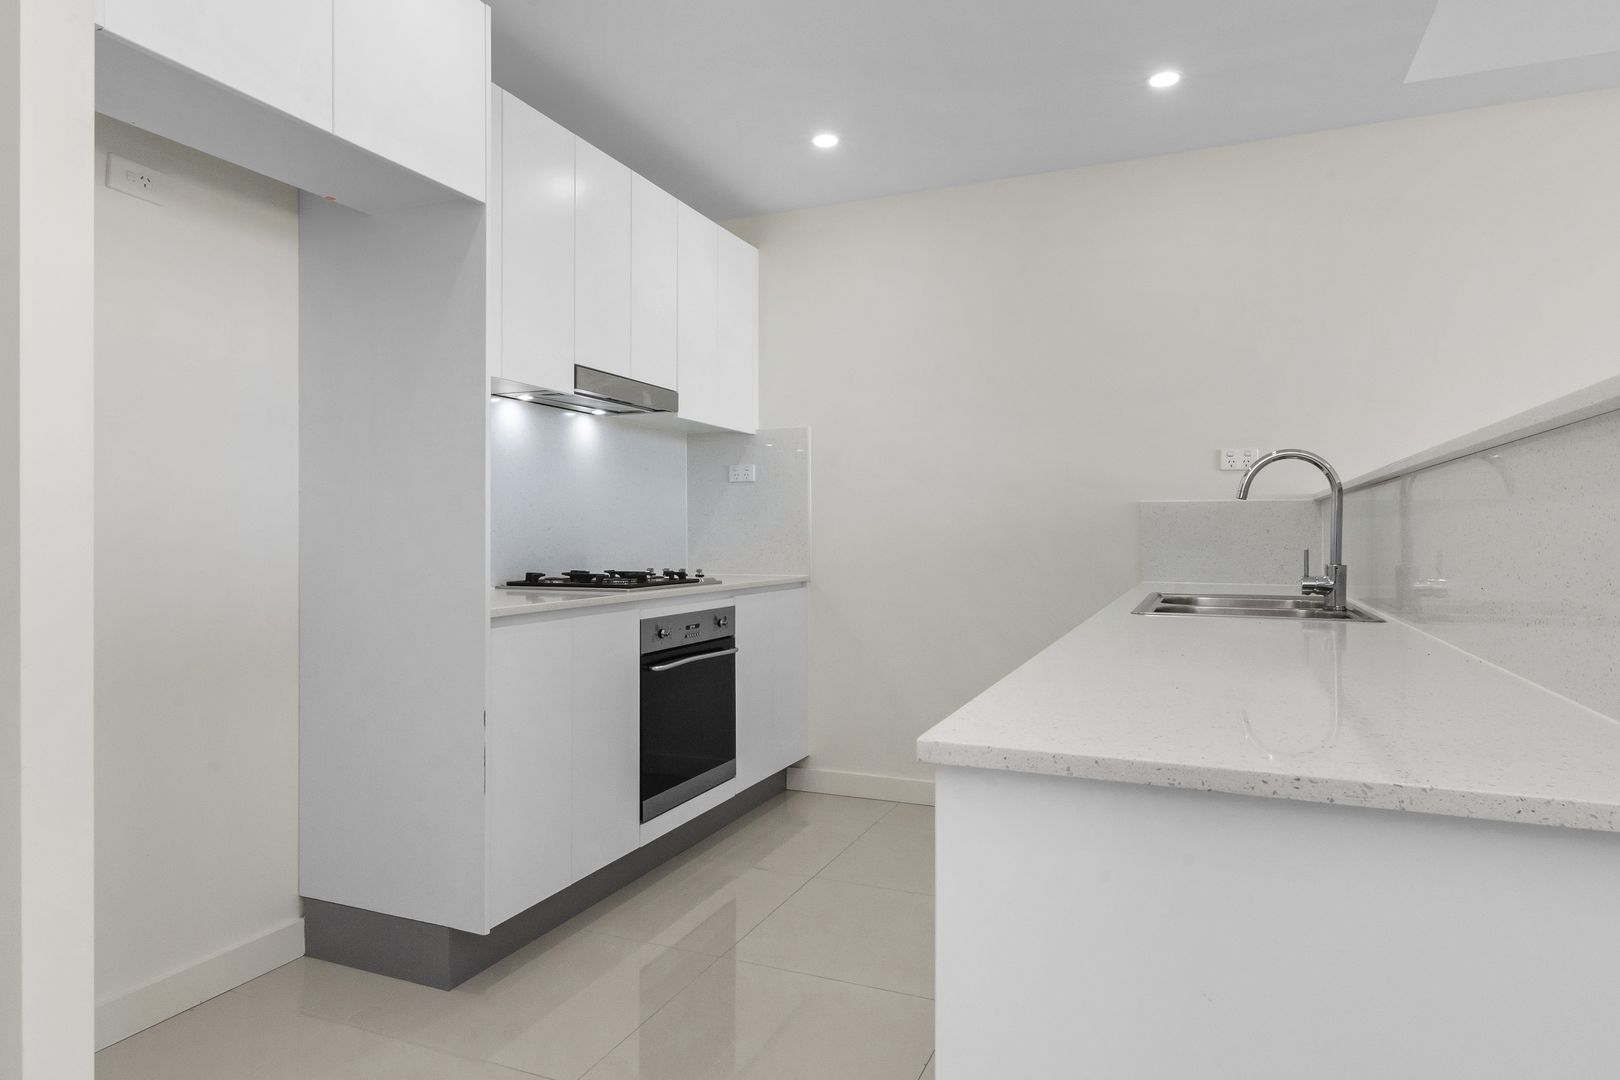 Level 5, 518/301 Old Northern Road, Castle Hill NSW 2154, Image 1